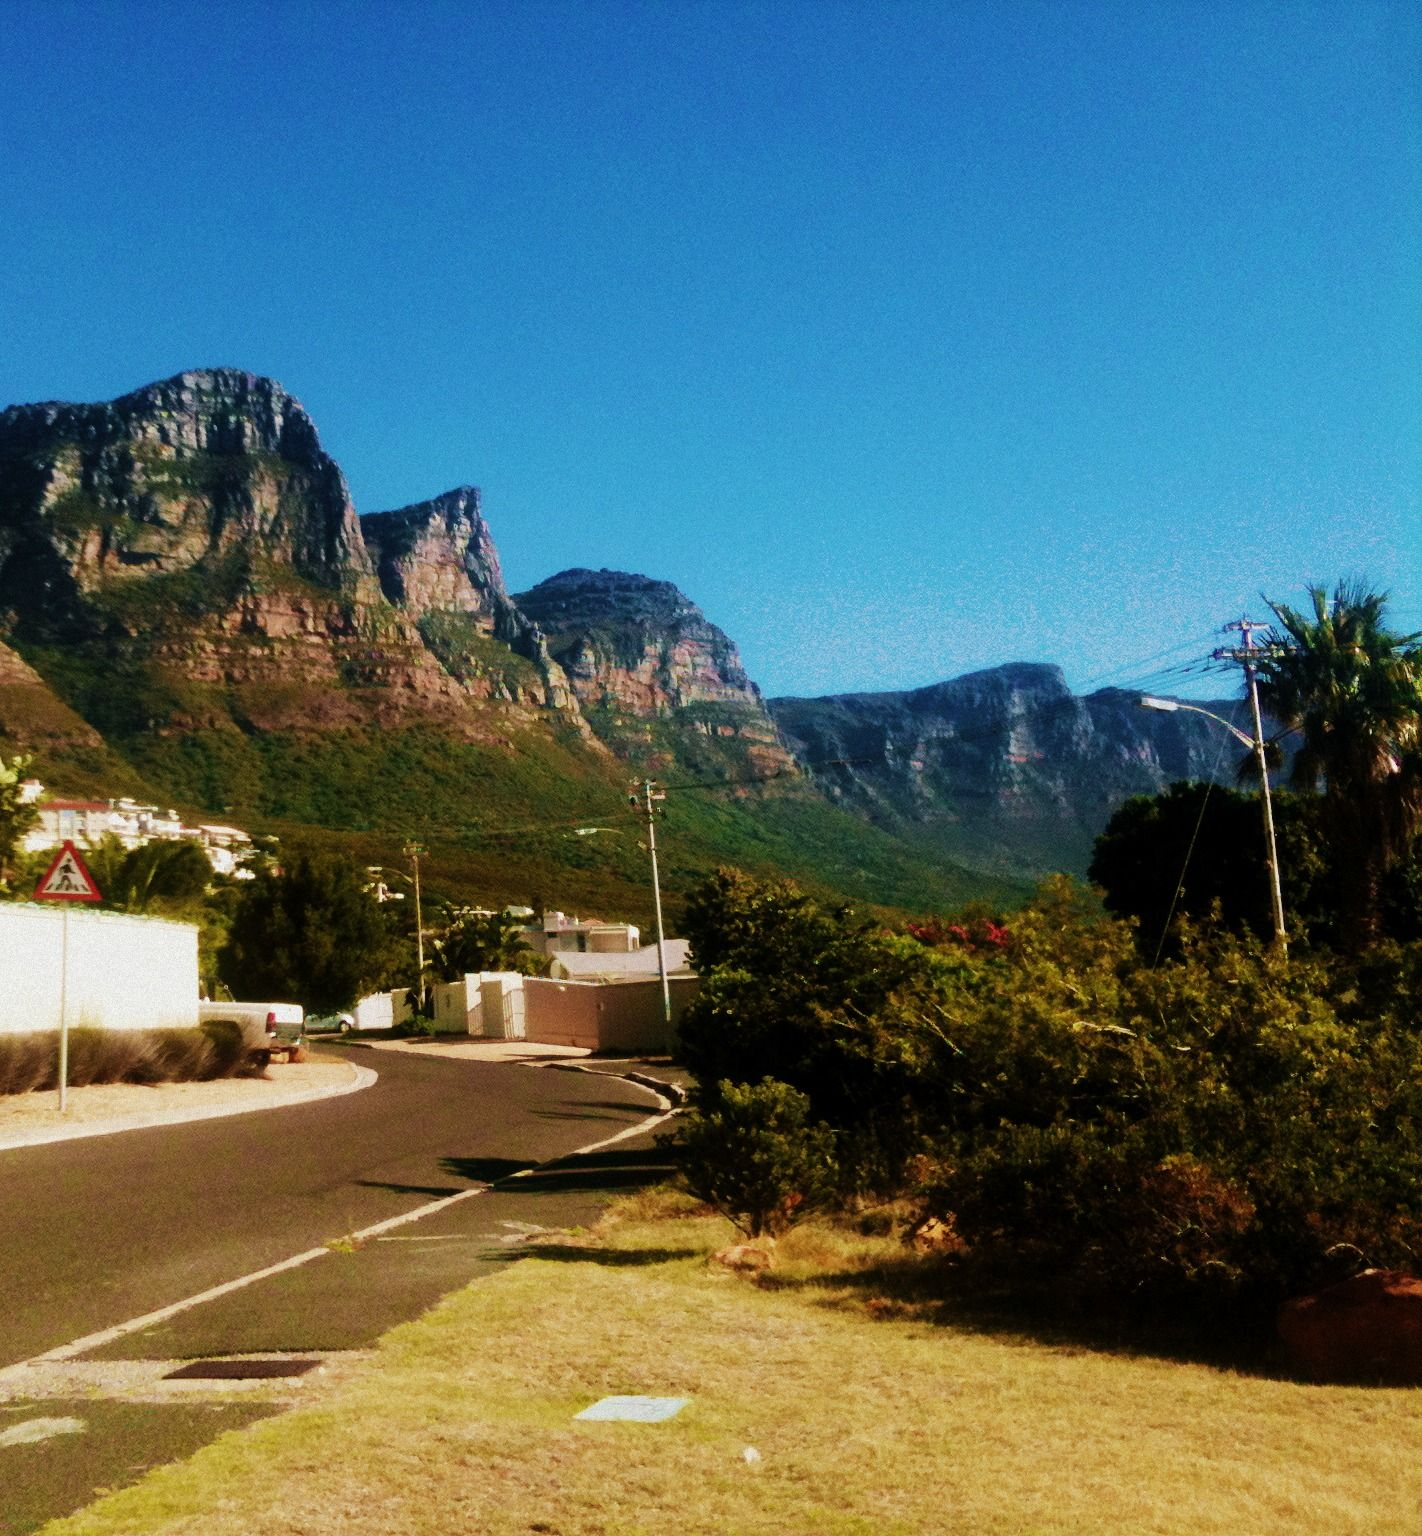 """The Twelve Apostles"" in Cape Town, South Africa - 2012-02-23"